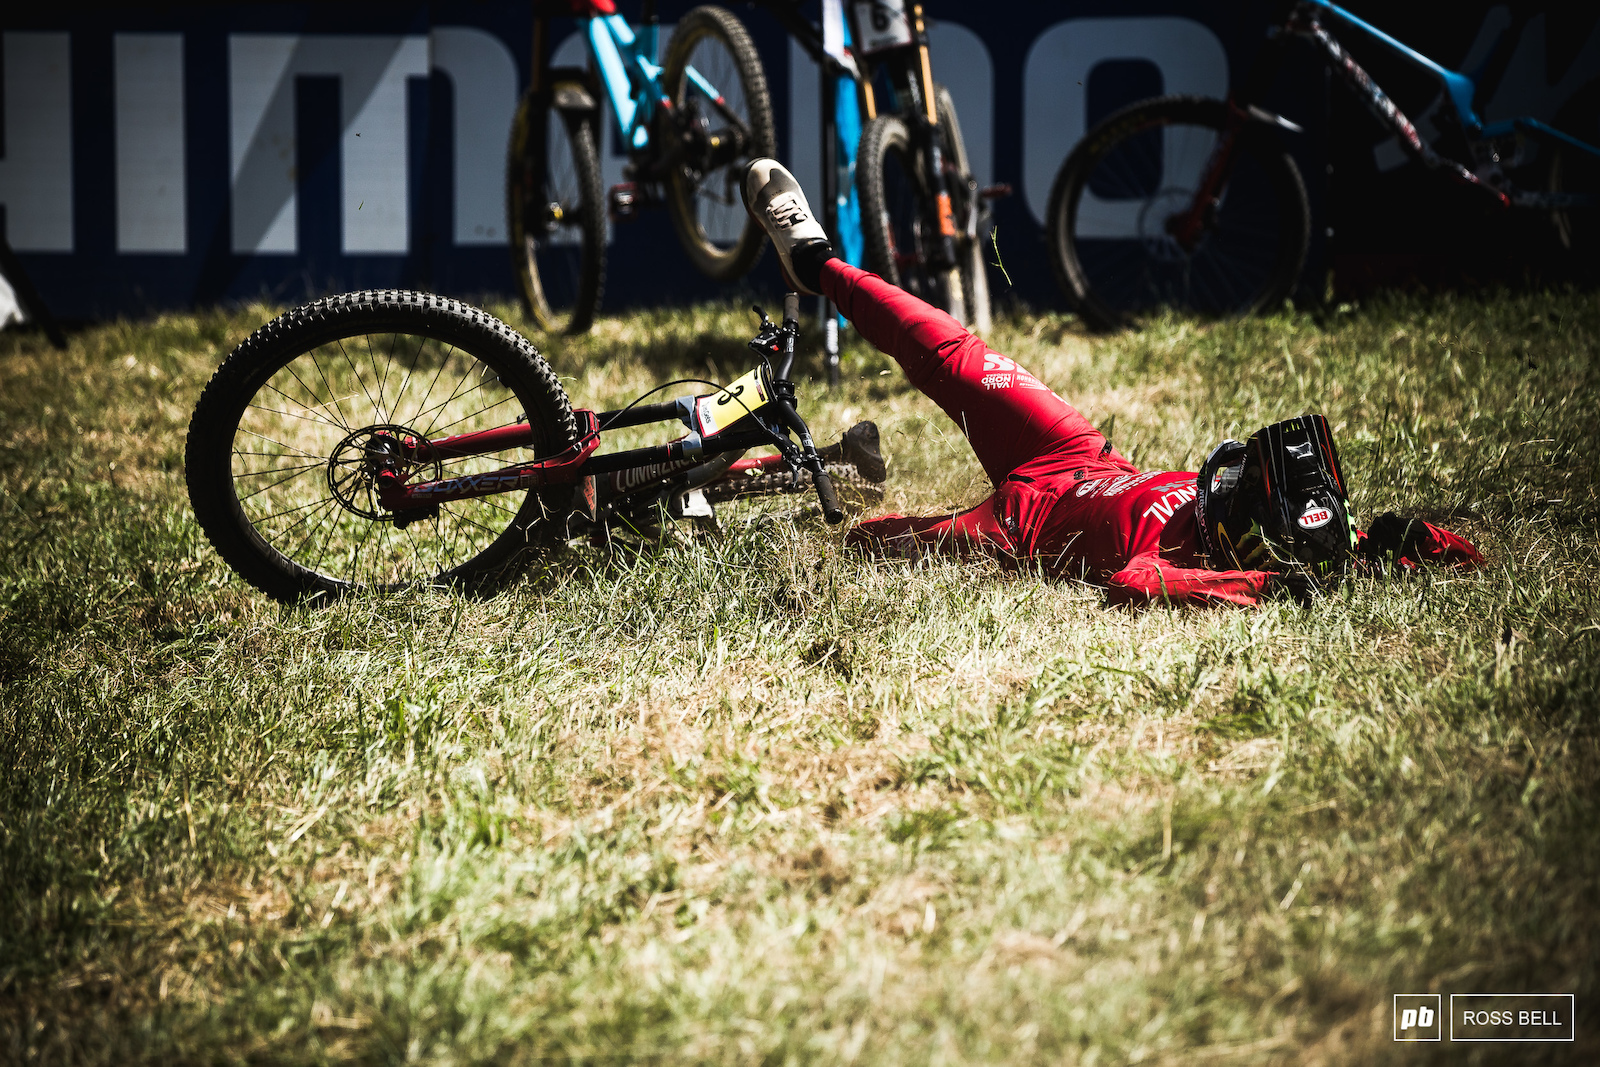 Amaury Pierron ends up on the ground after crossing over the line to an incredible win...